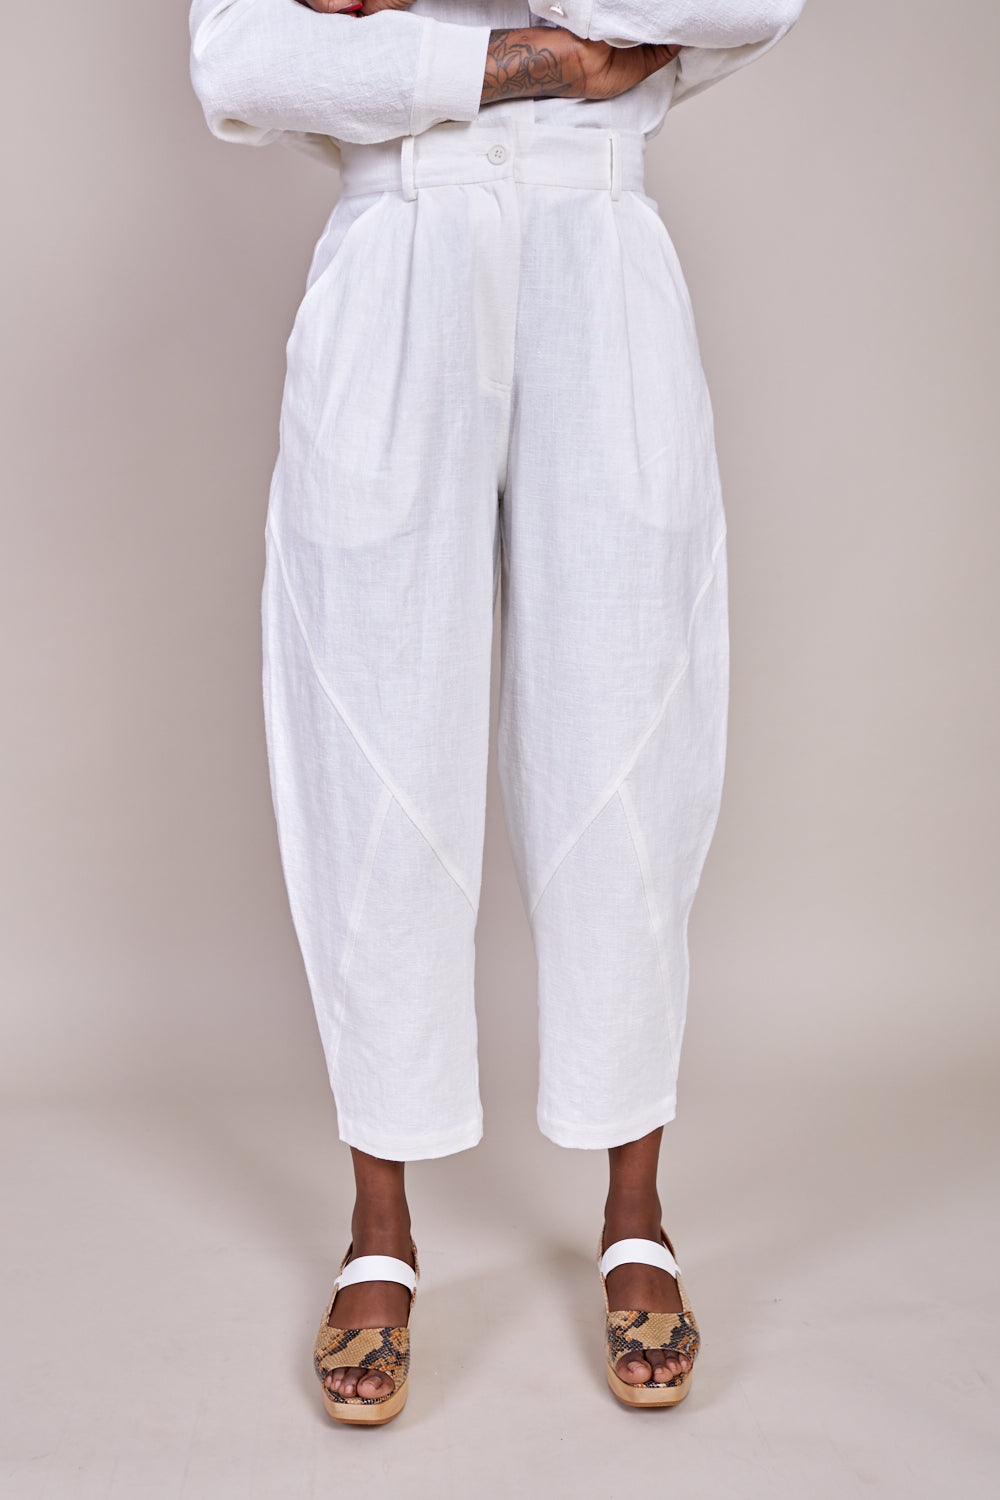 7115 by Szeki Signature Lantern Trouser in Off White - Vert & Vogue